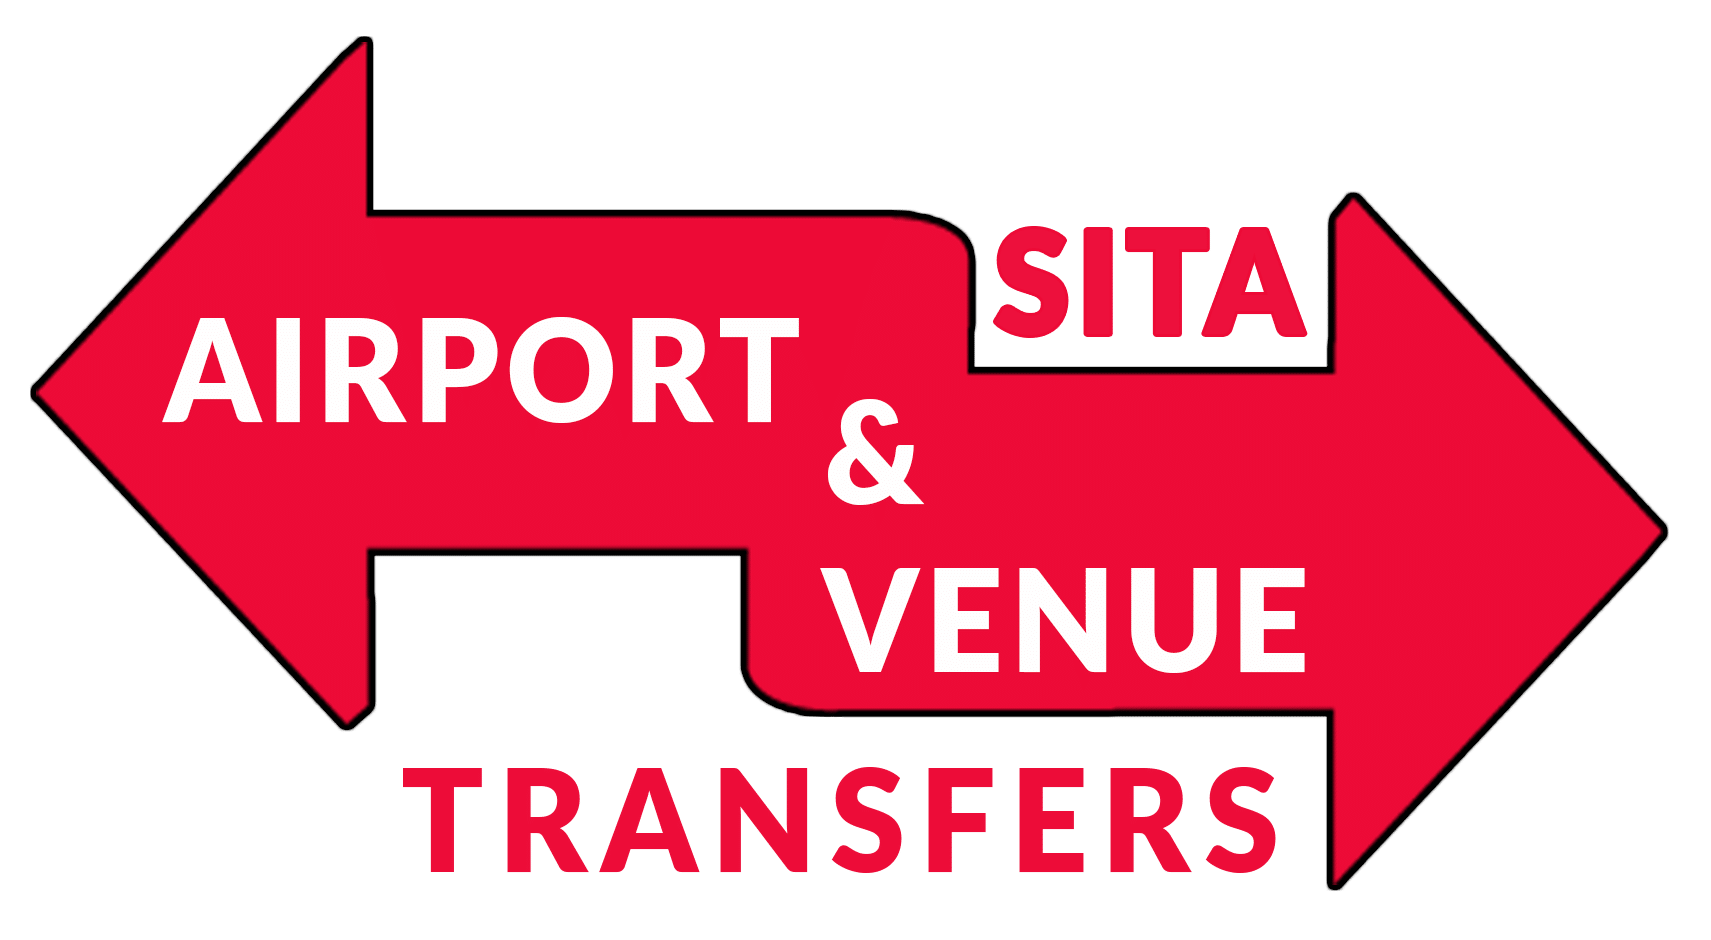 SITA-AIRPORT-&-VENUE-TRANSFERS-10